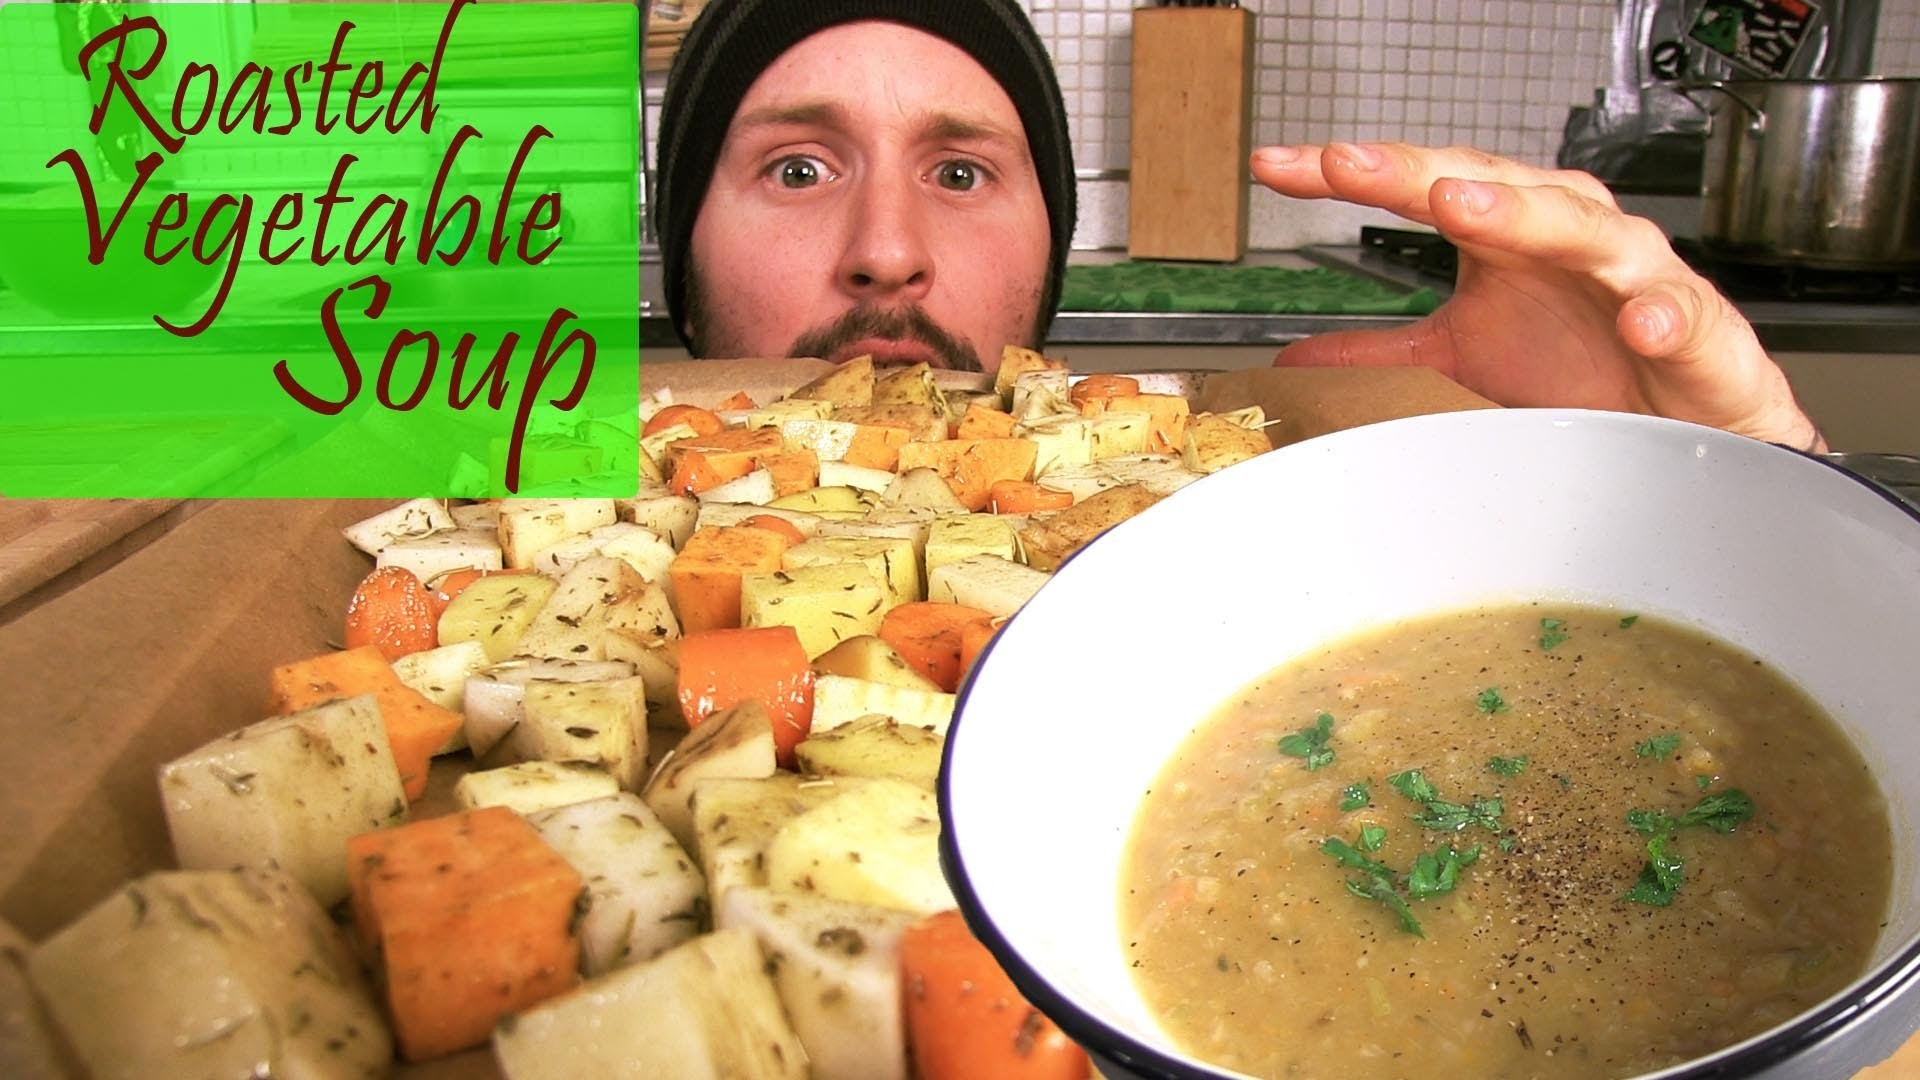 Roasted Vegetable Soup - The Vegan Zombie